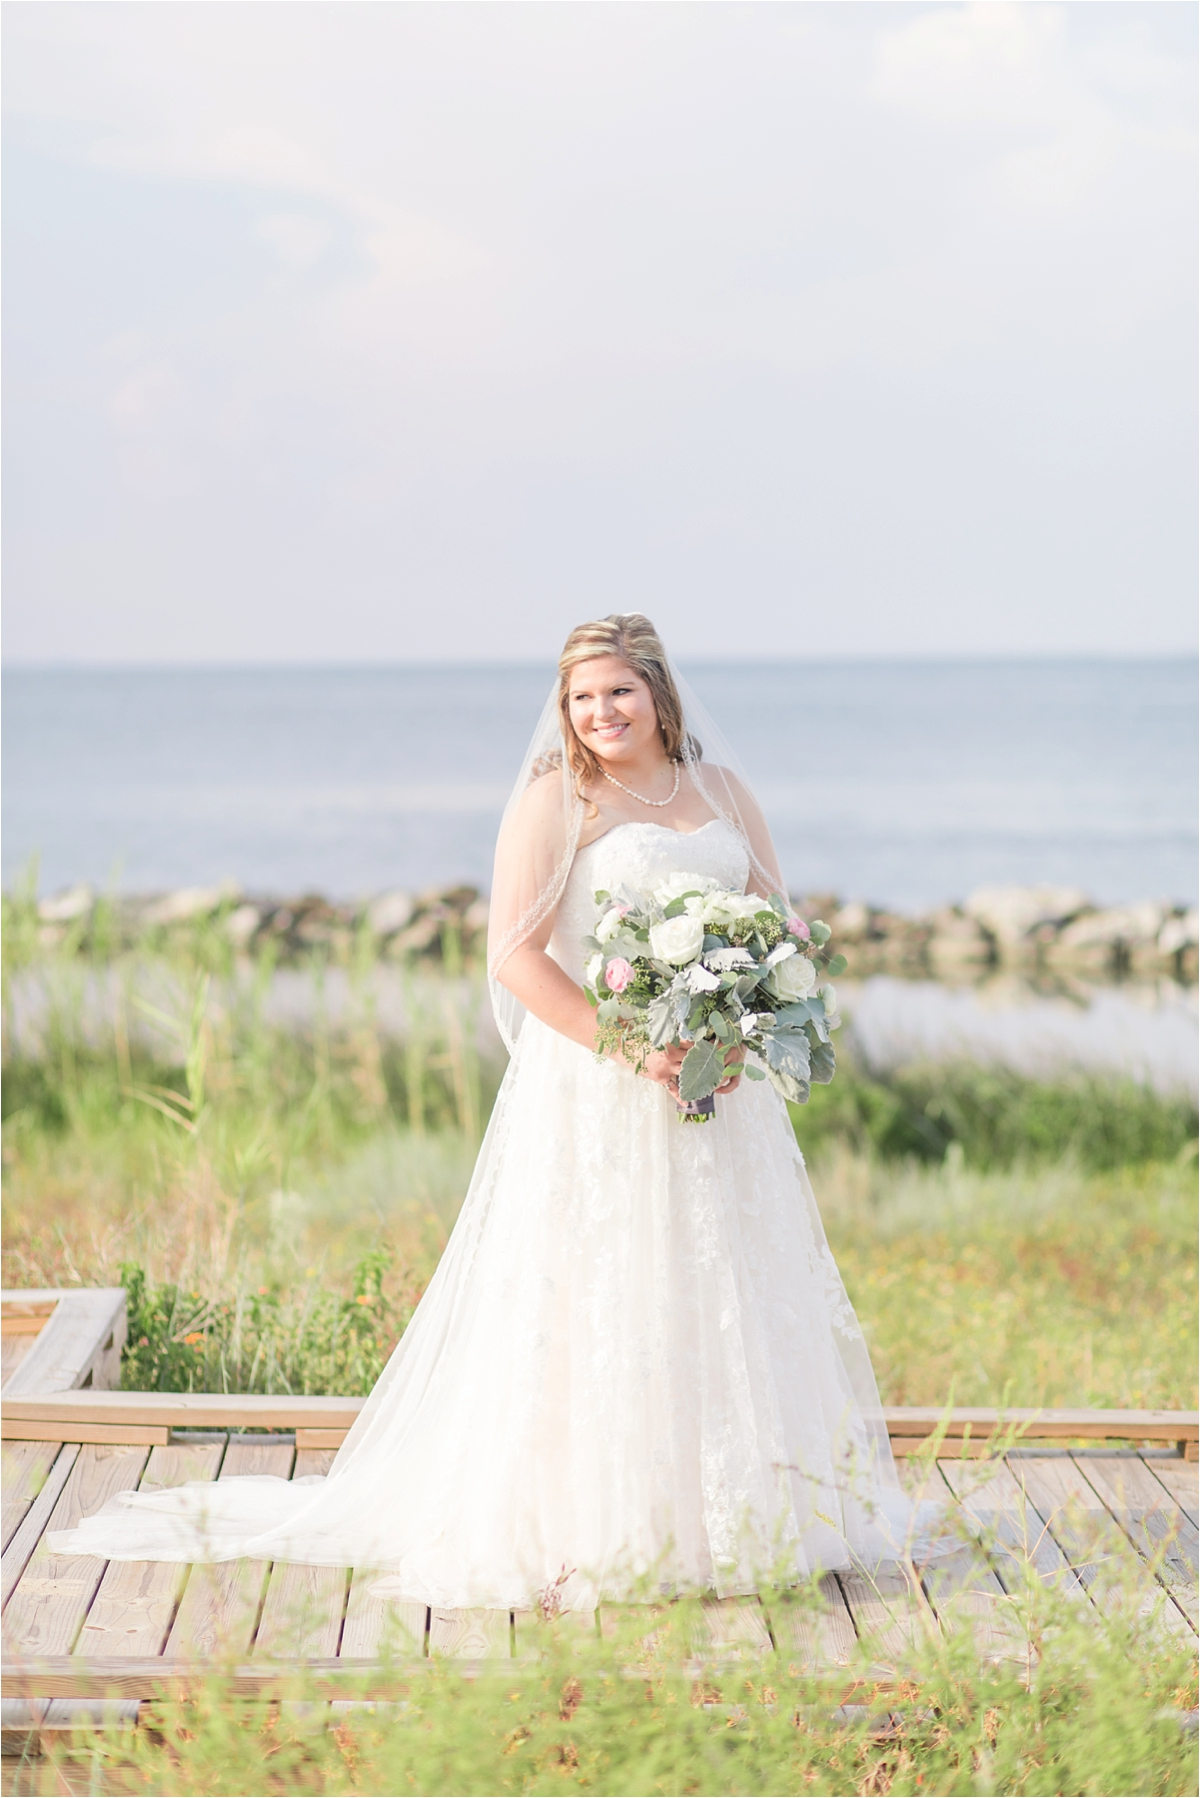 bridal-portraits-alabama-wedding-photographer-Dauphin Island Estuarium-on the beach-beach